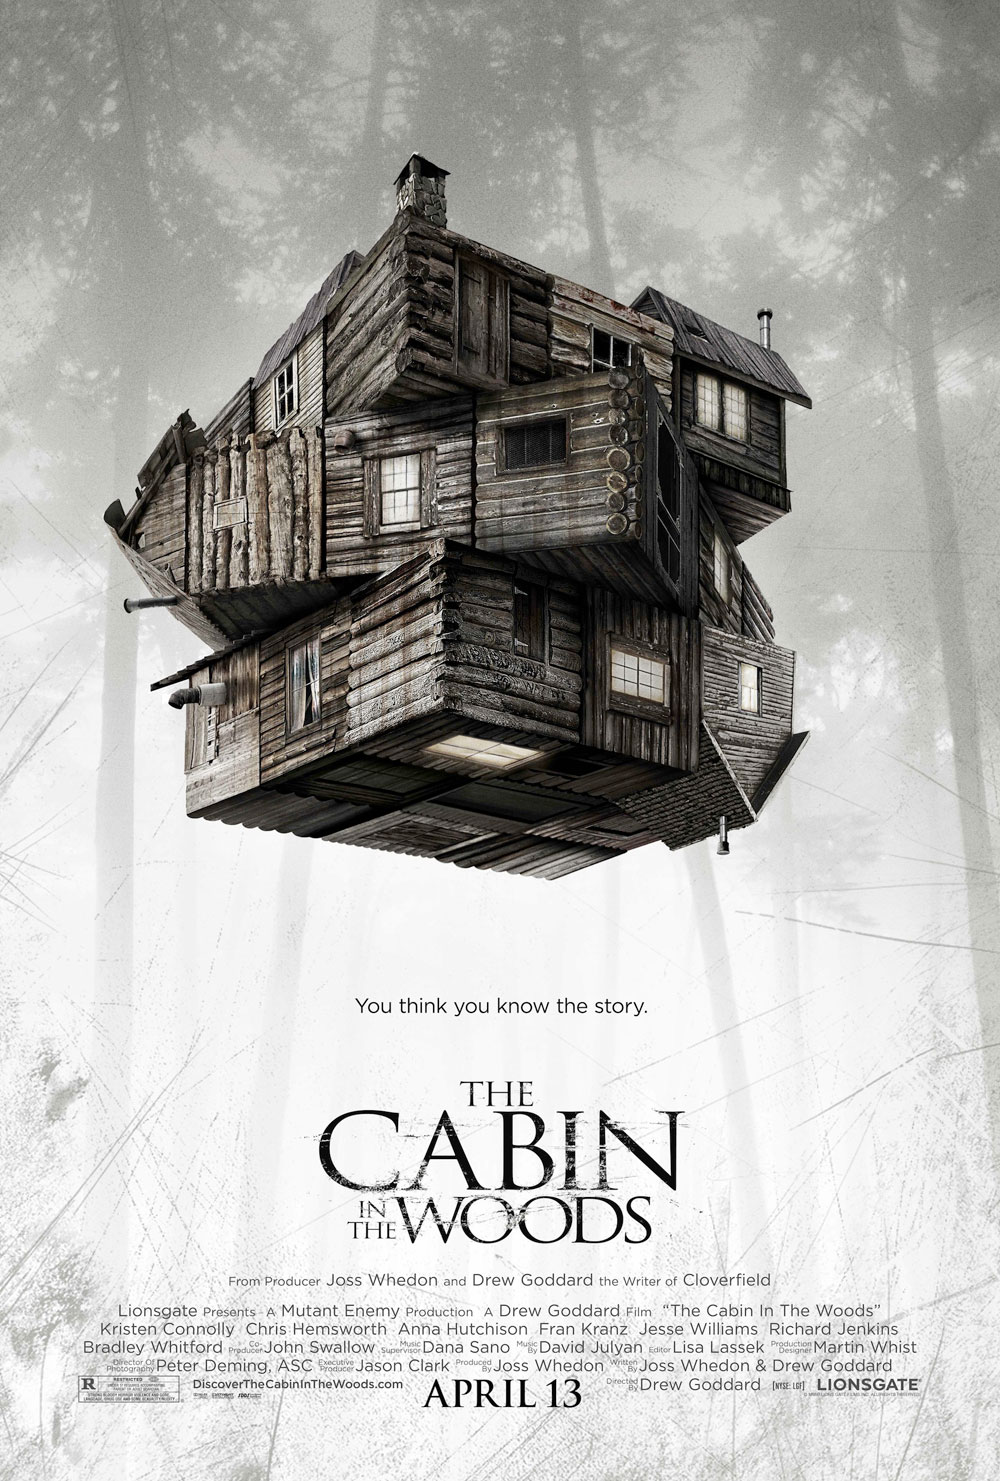 Download The Cabin in the Woods | Film Horor Barat